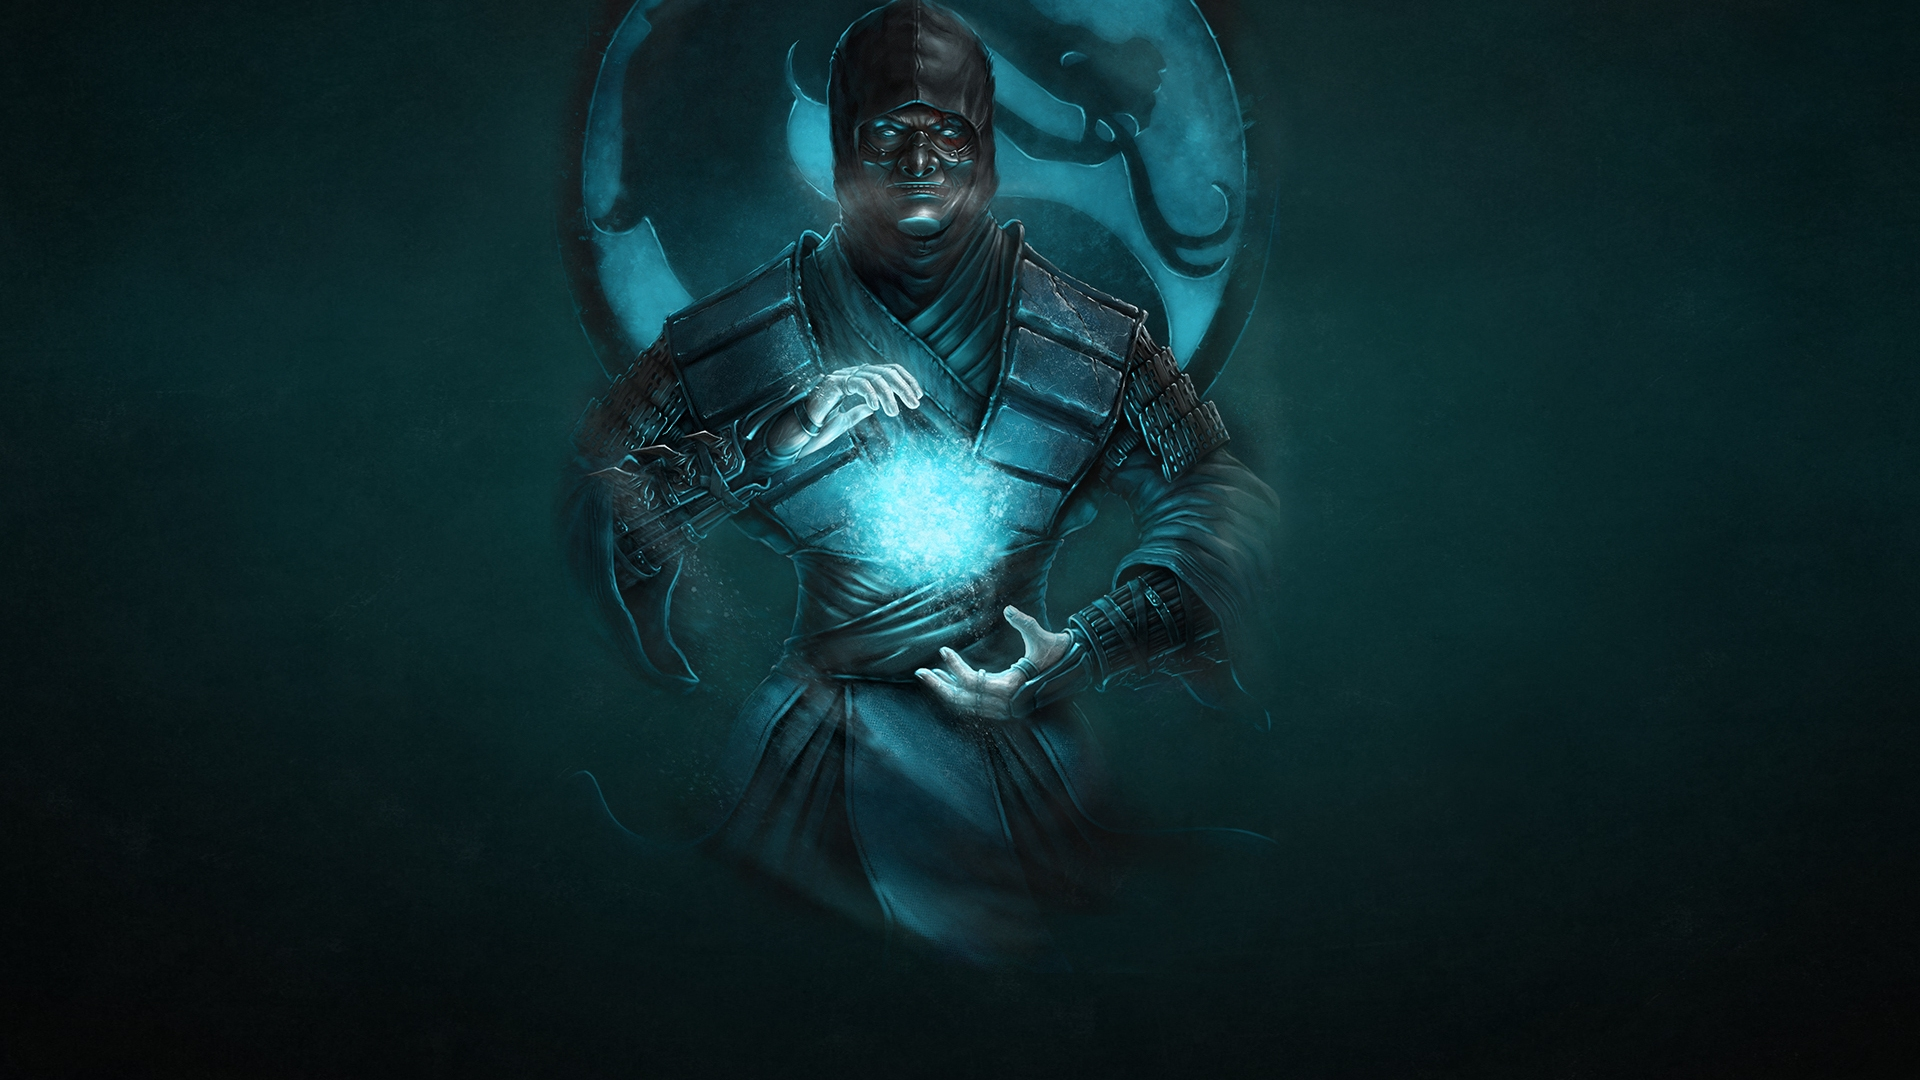 Sub Zero Mortal Kombat Hd Wallpaper Wallpaperfx